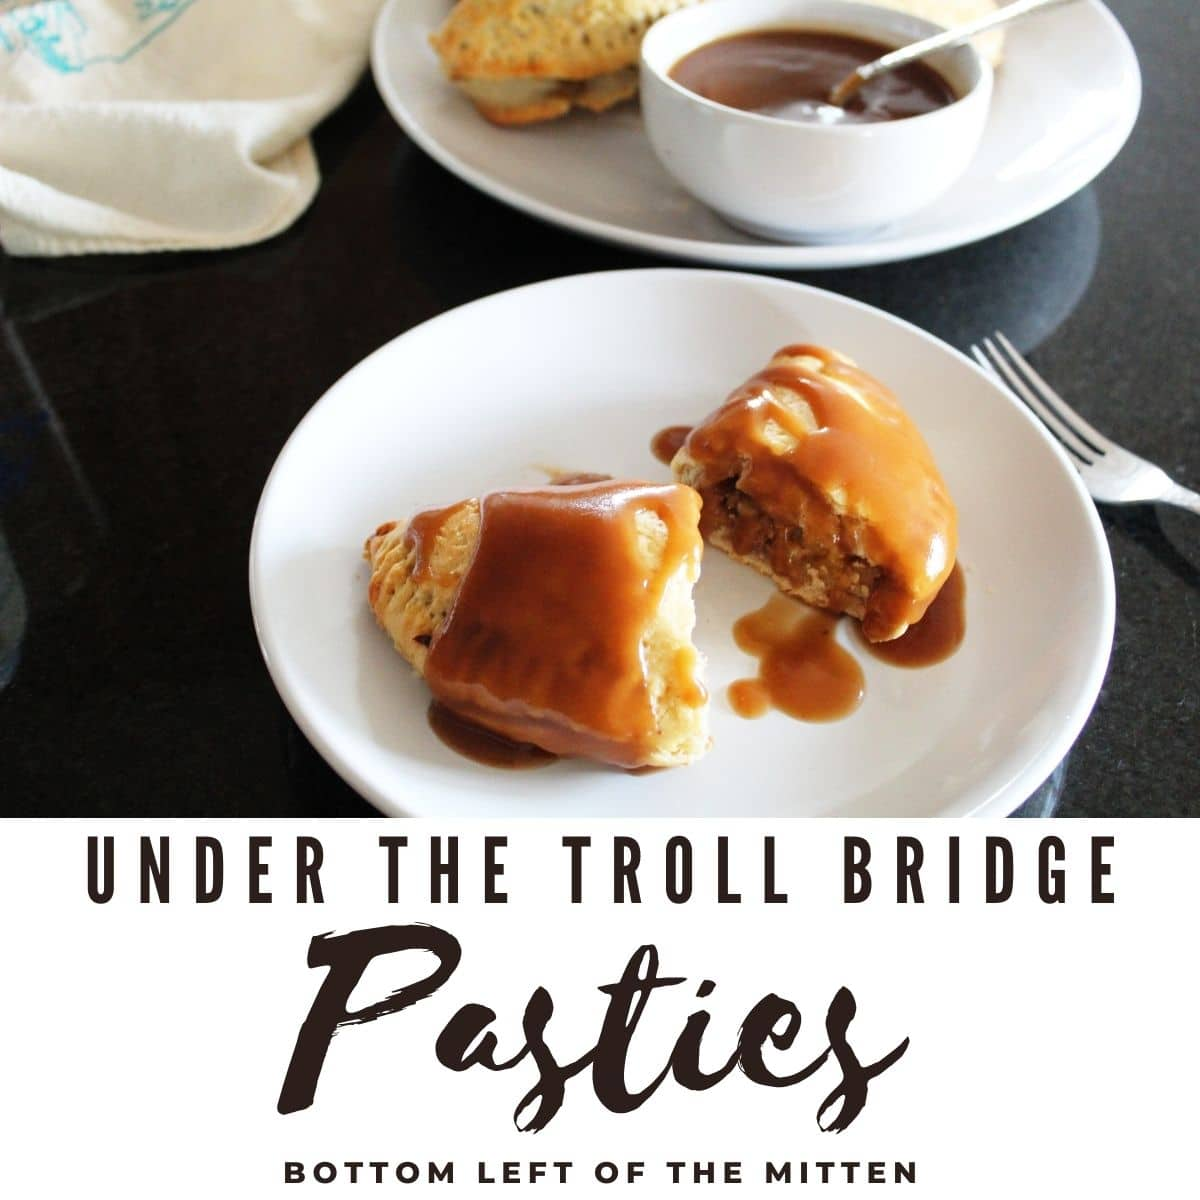 Under the Troll Bridge Pasties with brown gravy drizzled over them.